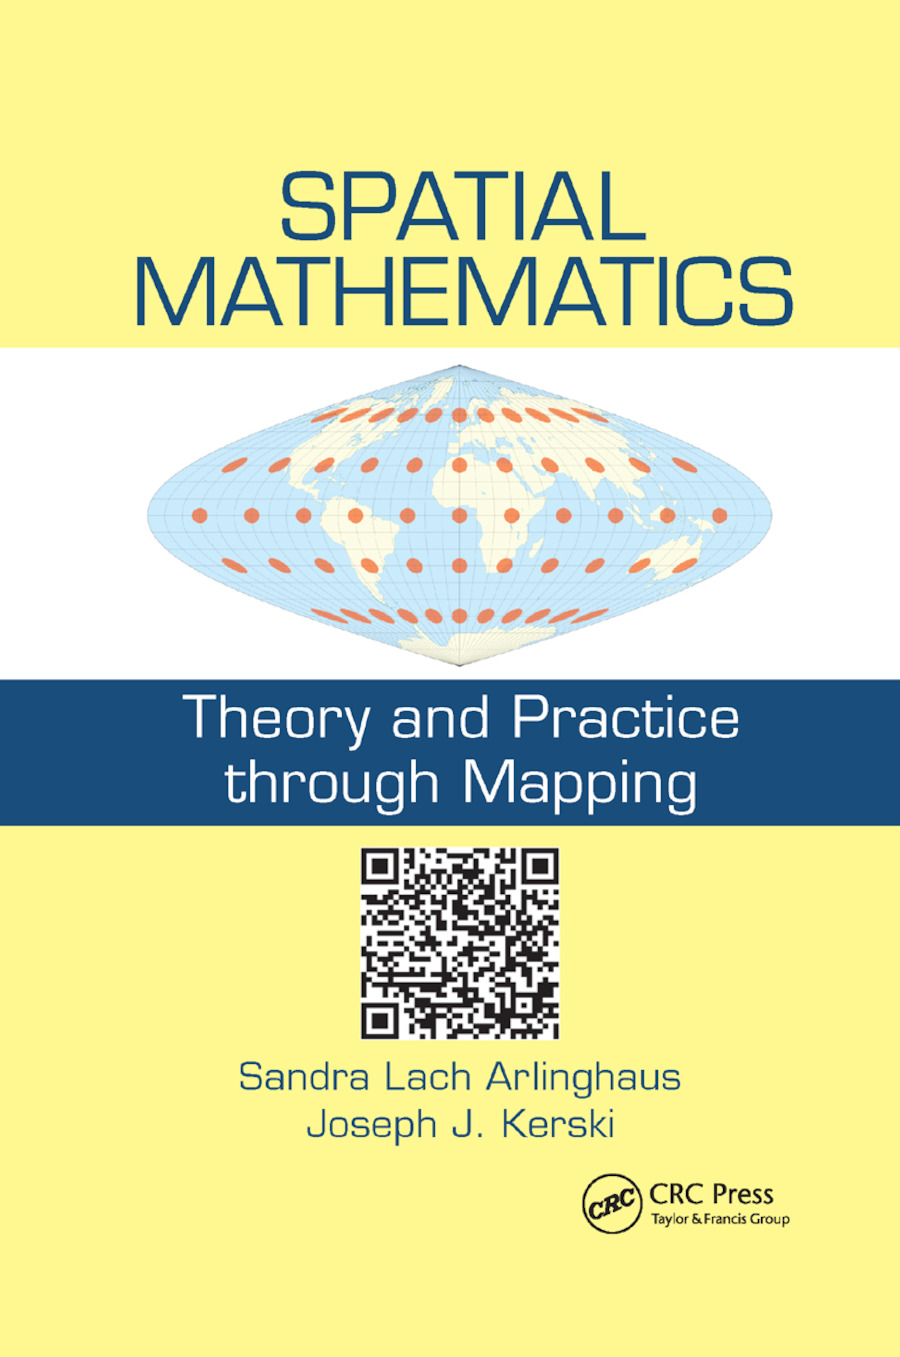 Spatial Mathematics: Theory and Practice through Mapping book cover